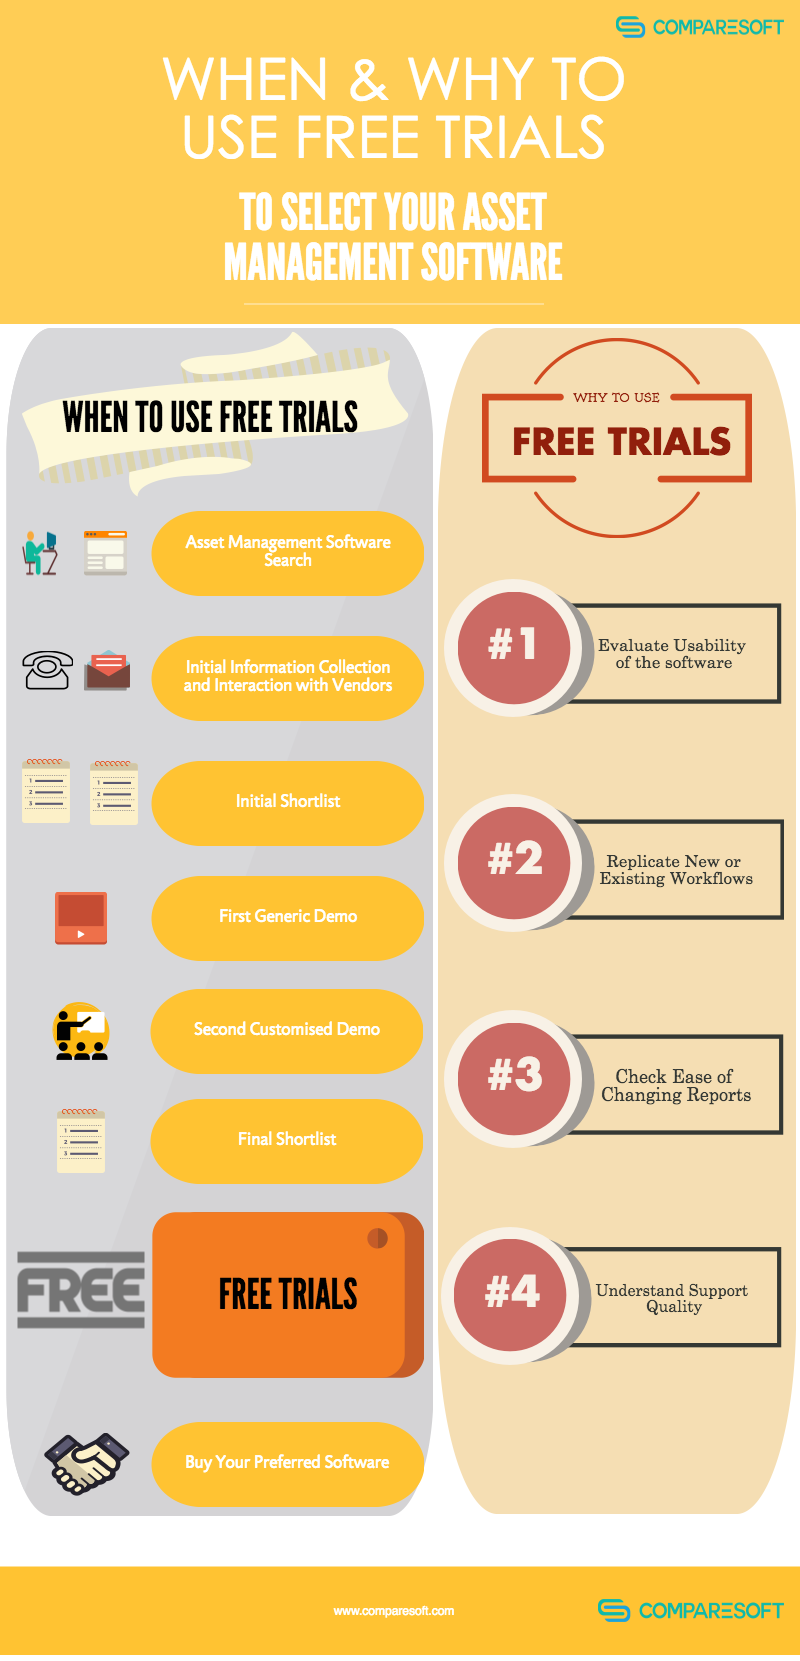 When and Why to Use Free Trials